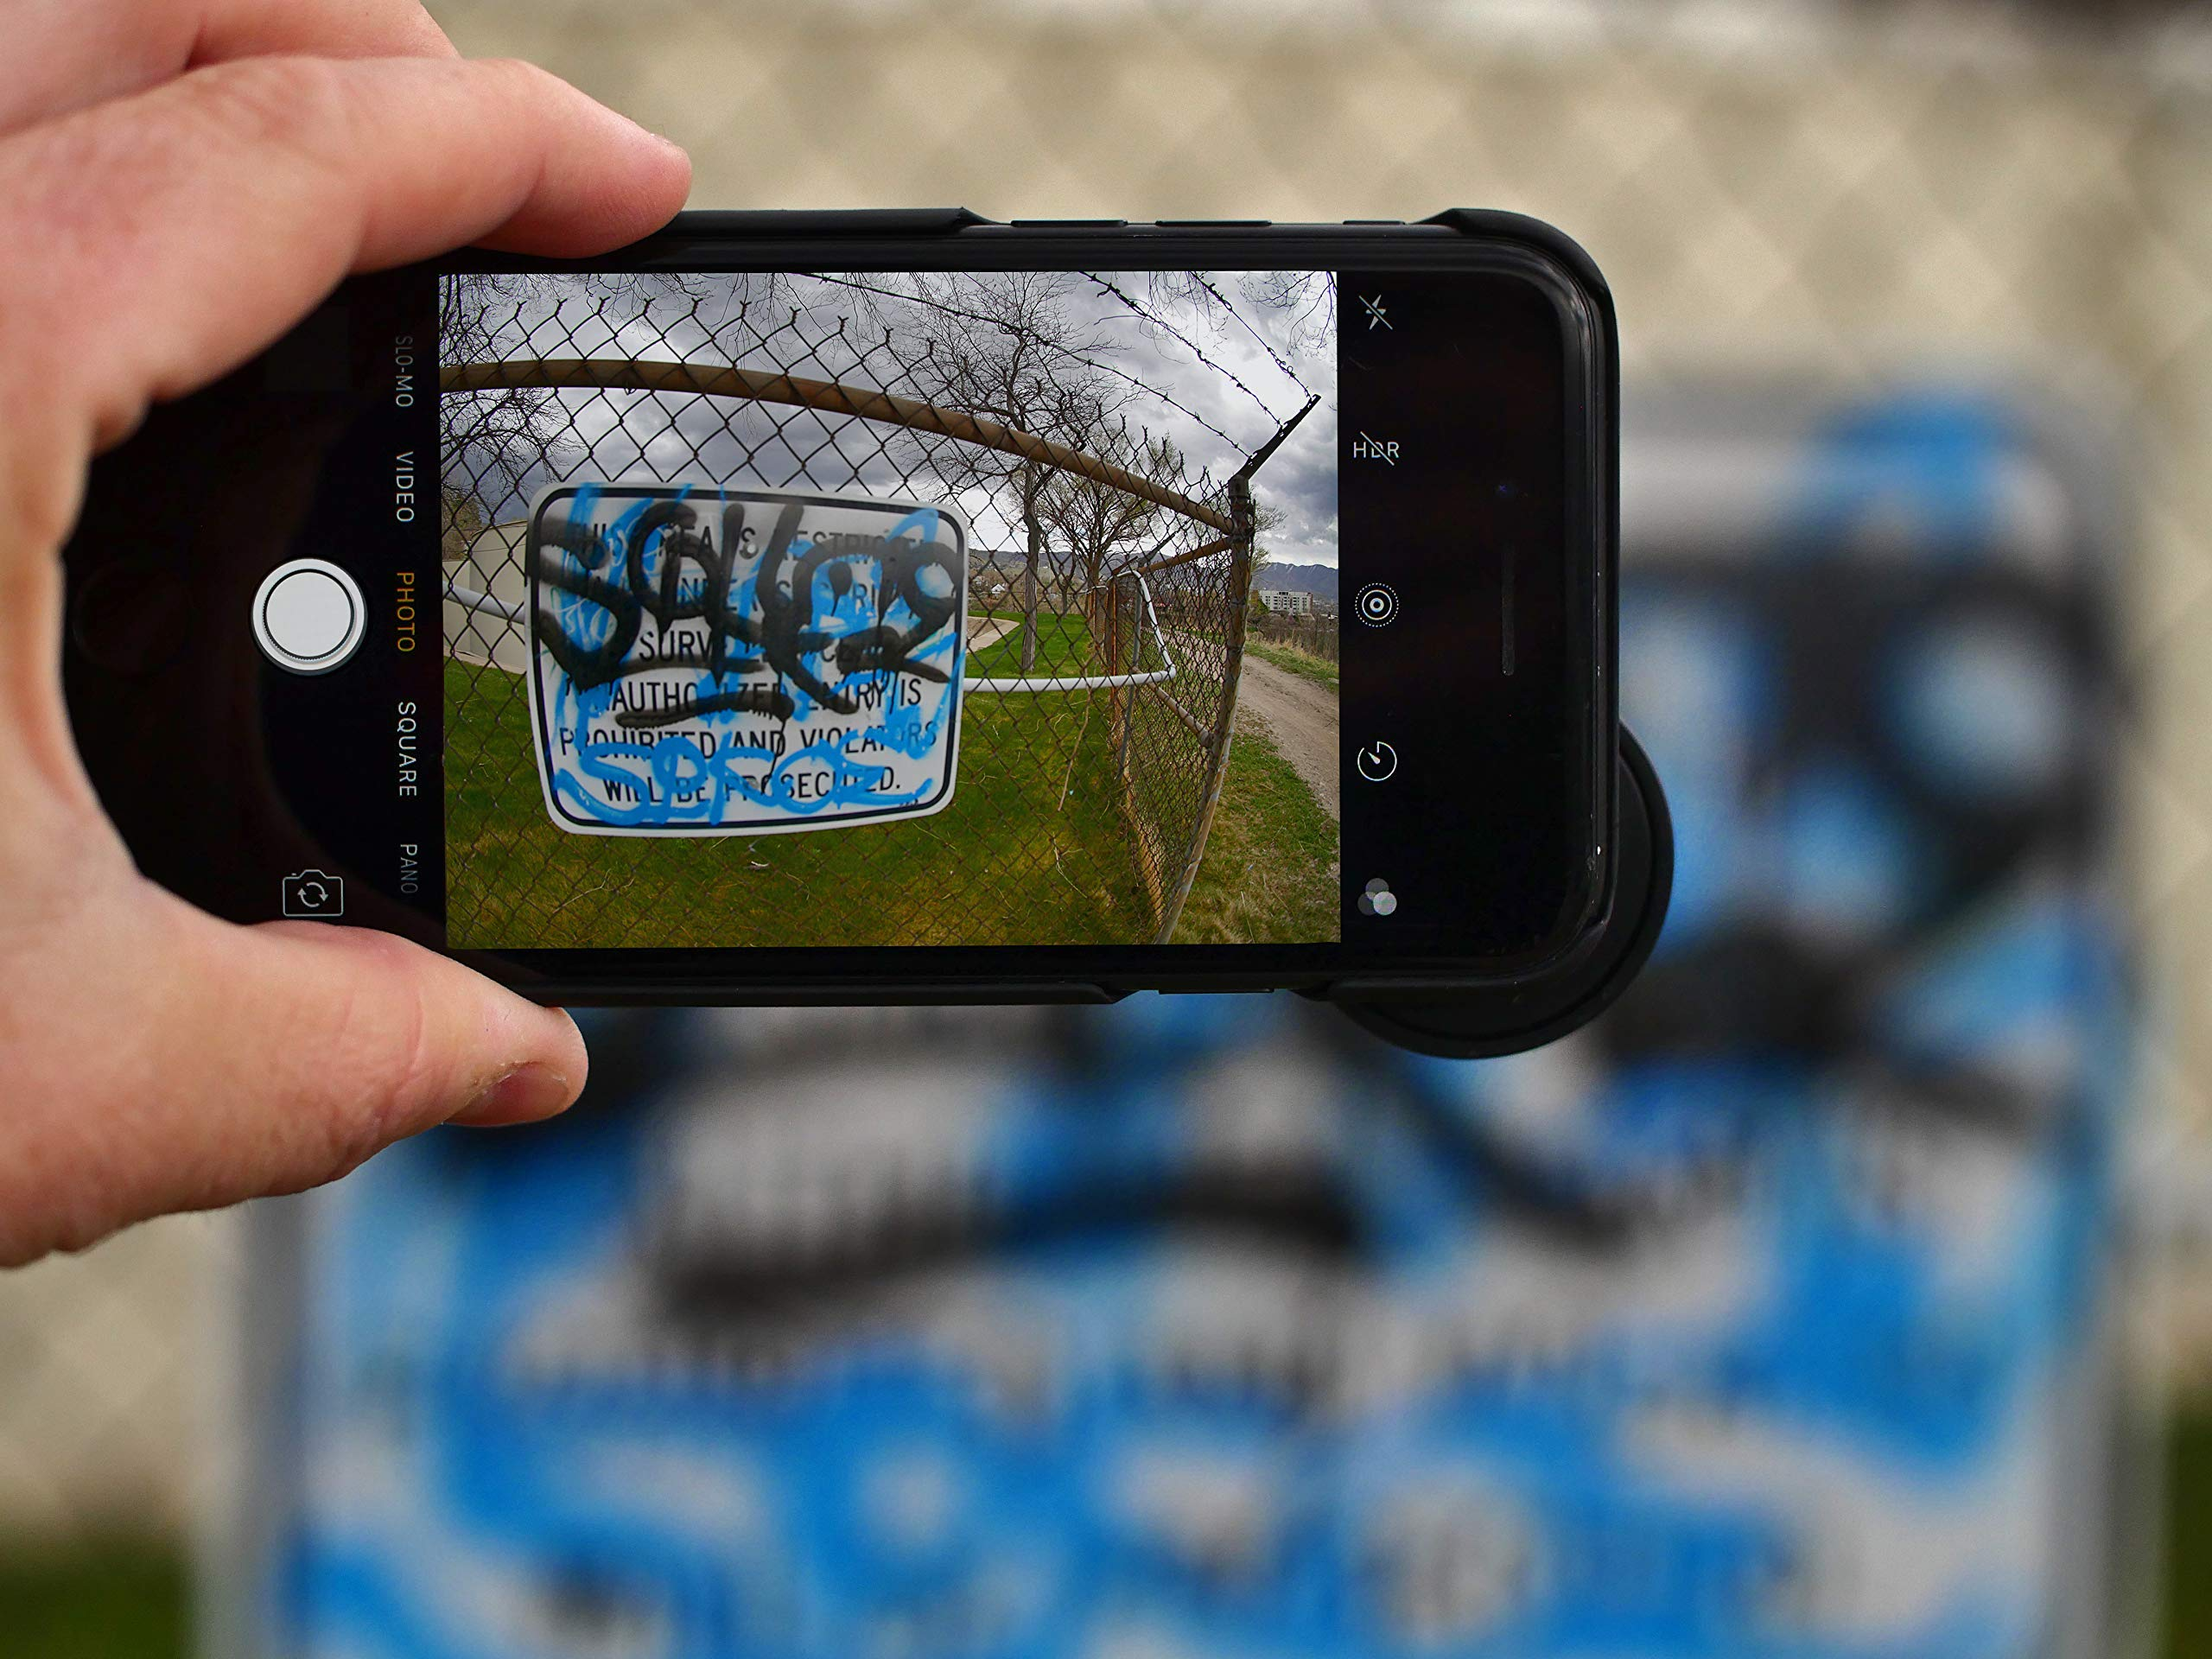 Death Lens iPhone 7 Fisheye 200 Degree Professional Photo HD - Perfect for Skateboarding, Snowboarding, Skiing, and Traveling by DEATH LENS